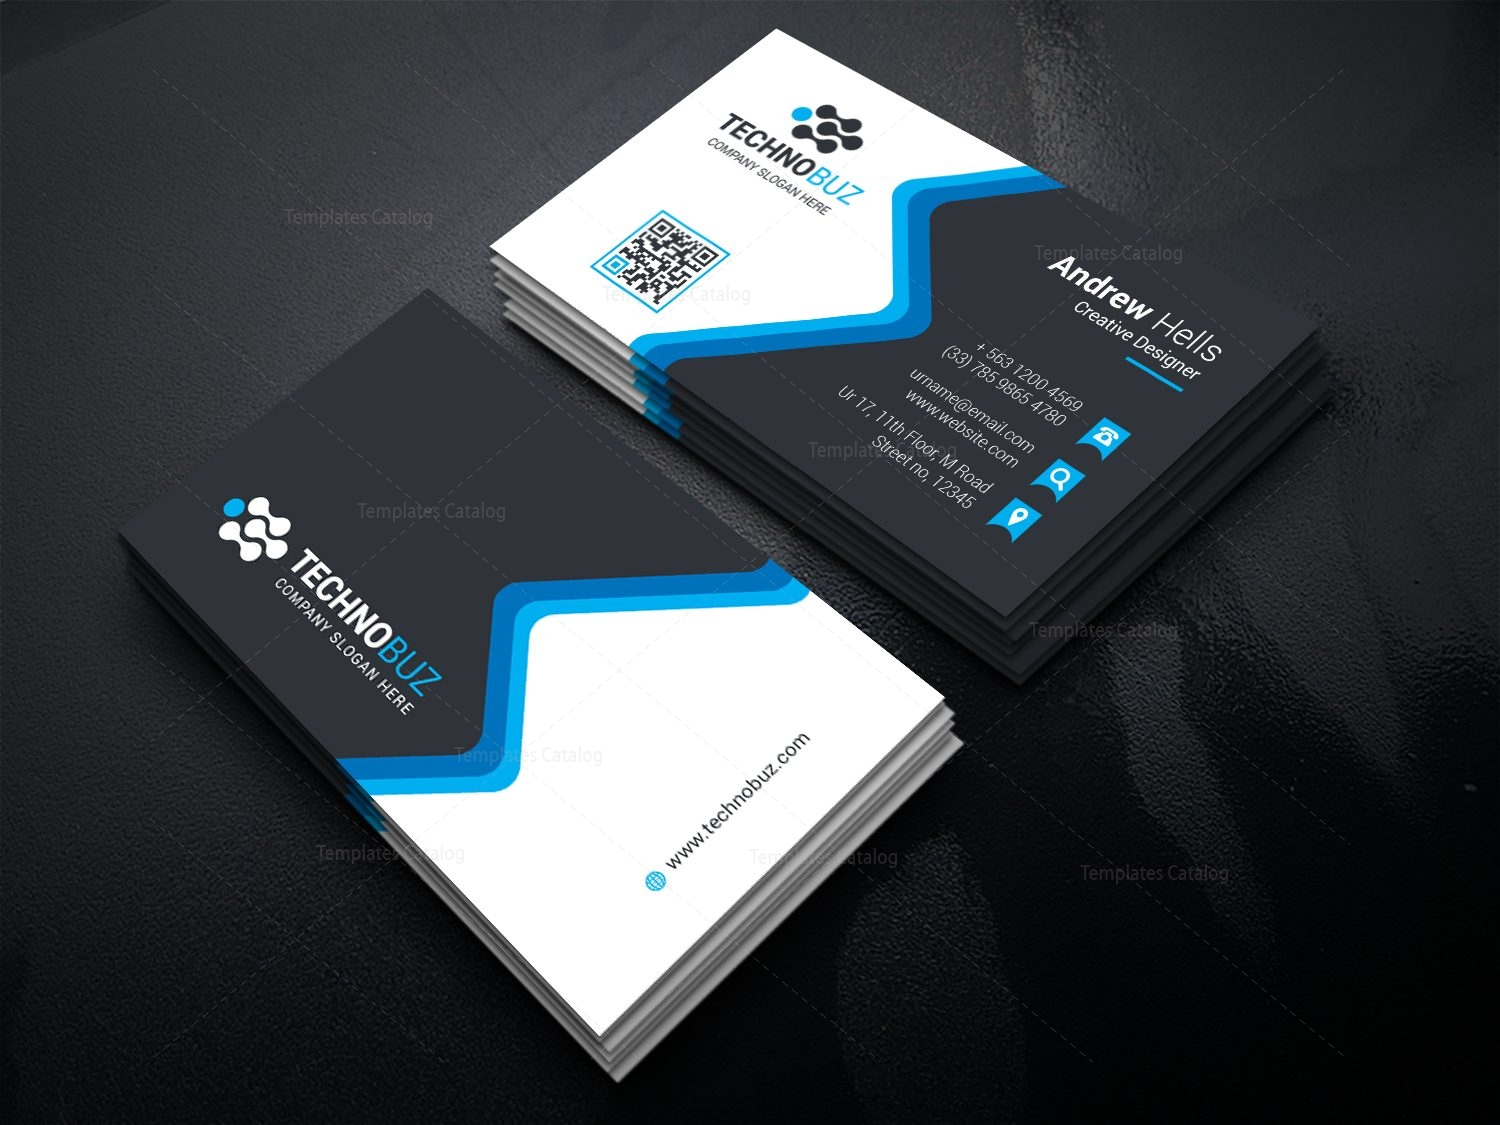 business card sample - solarfm.tk